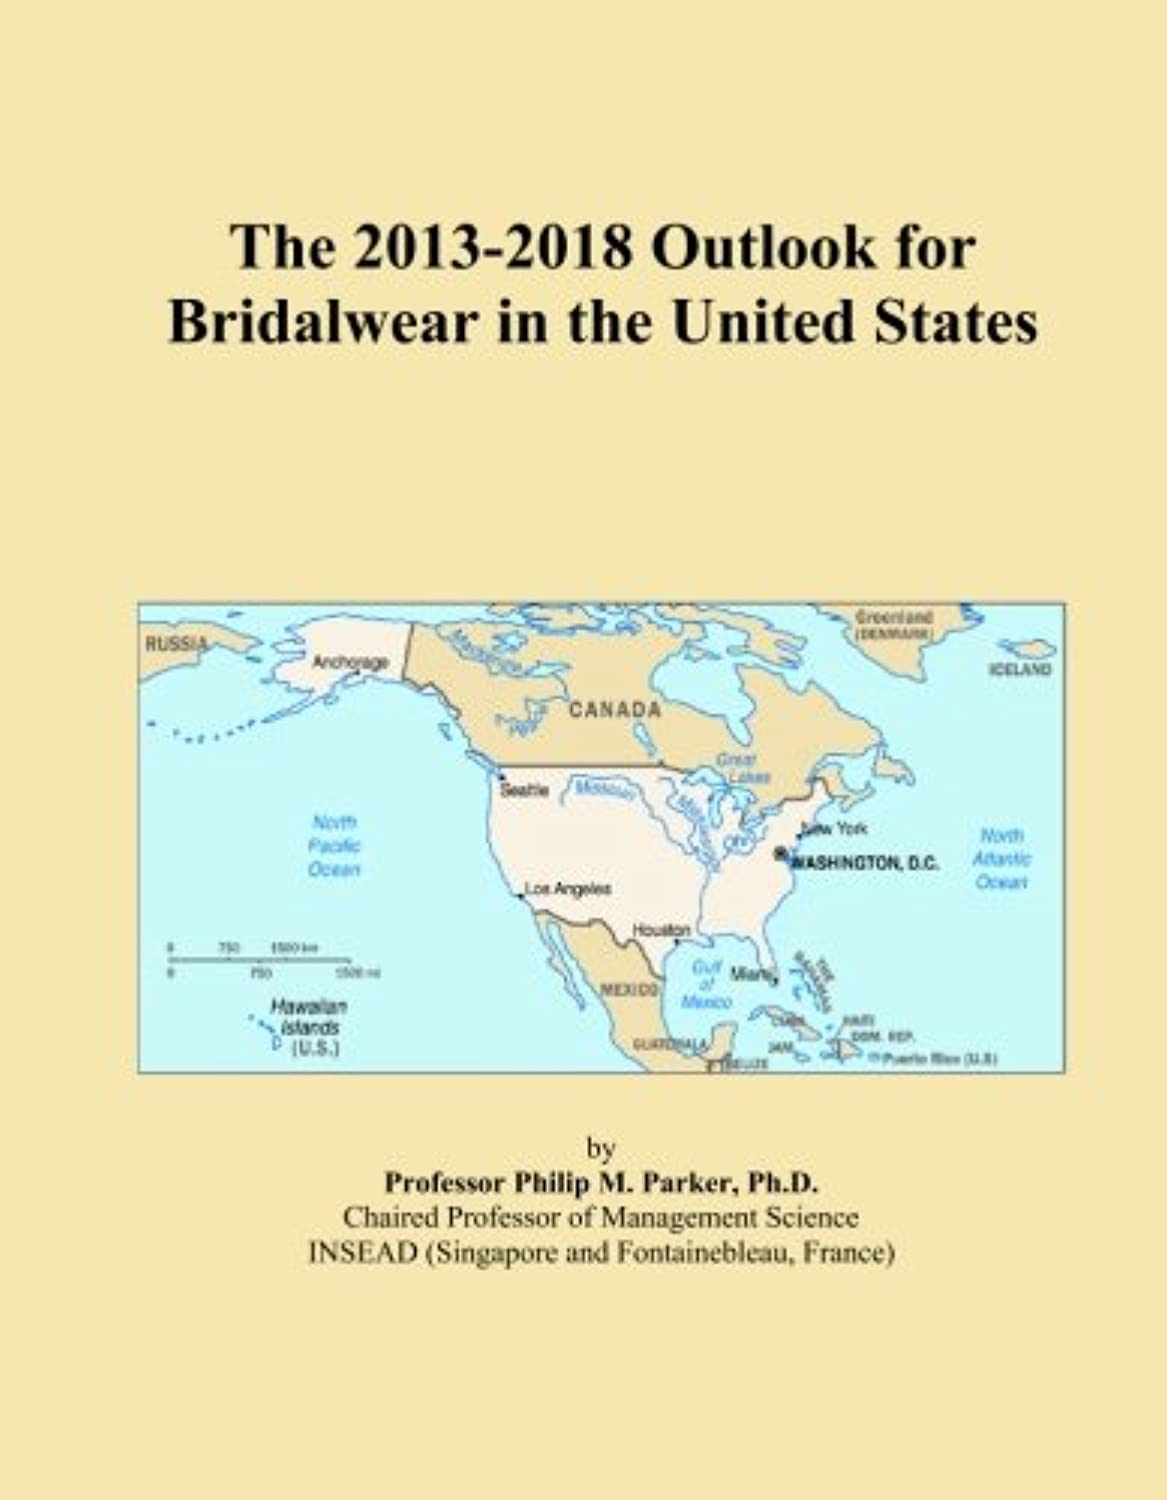 The 2013-2018 Outlook for Bridalwear in the United States